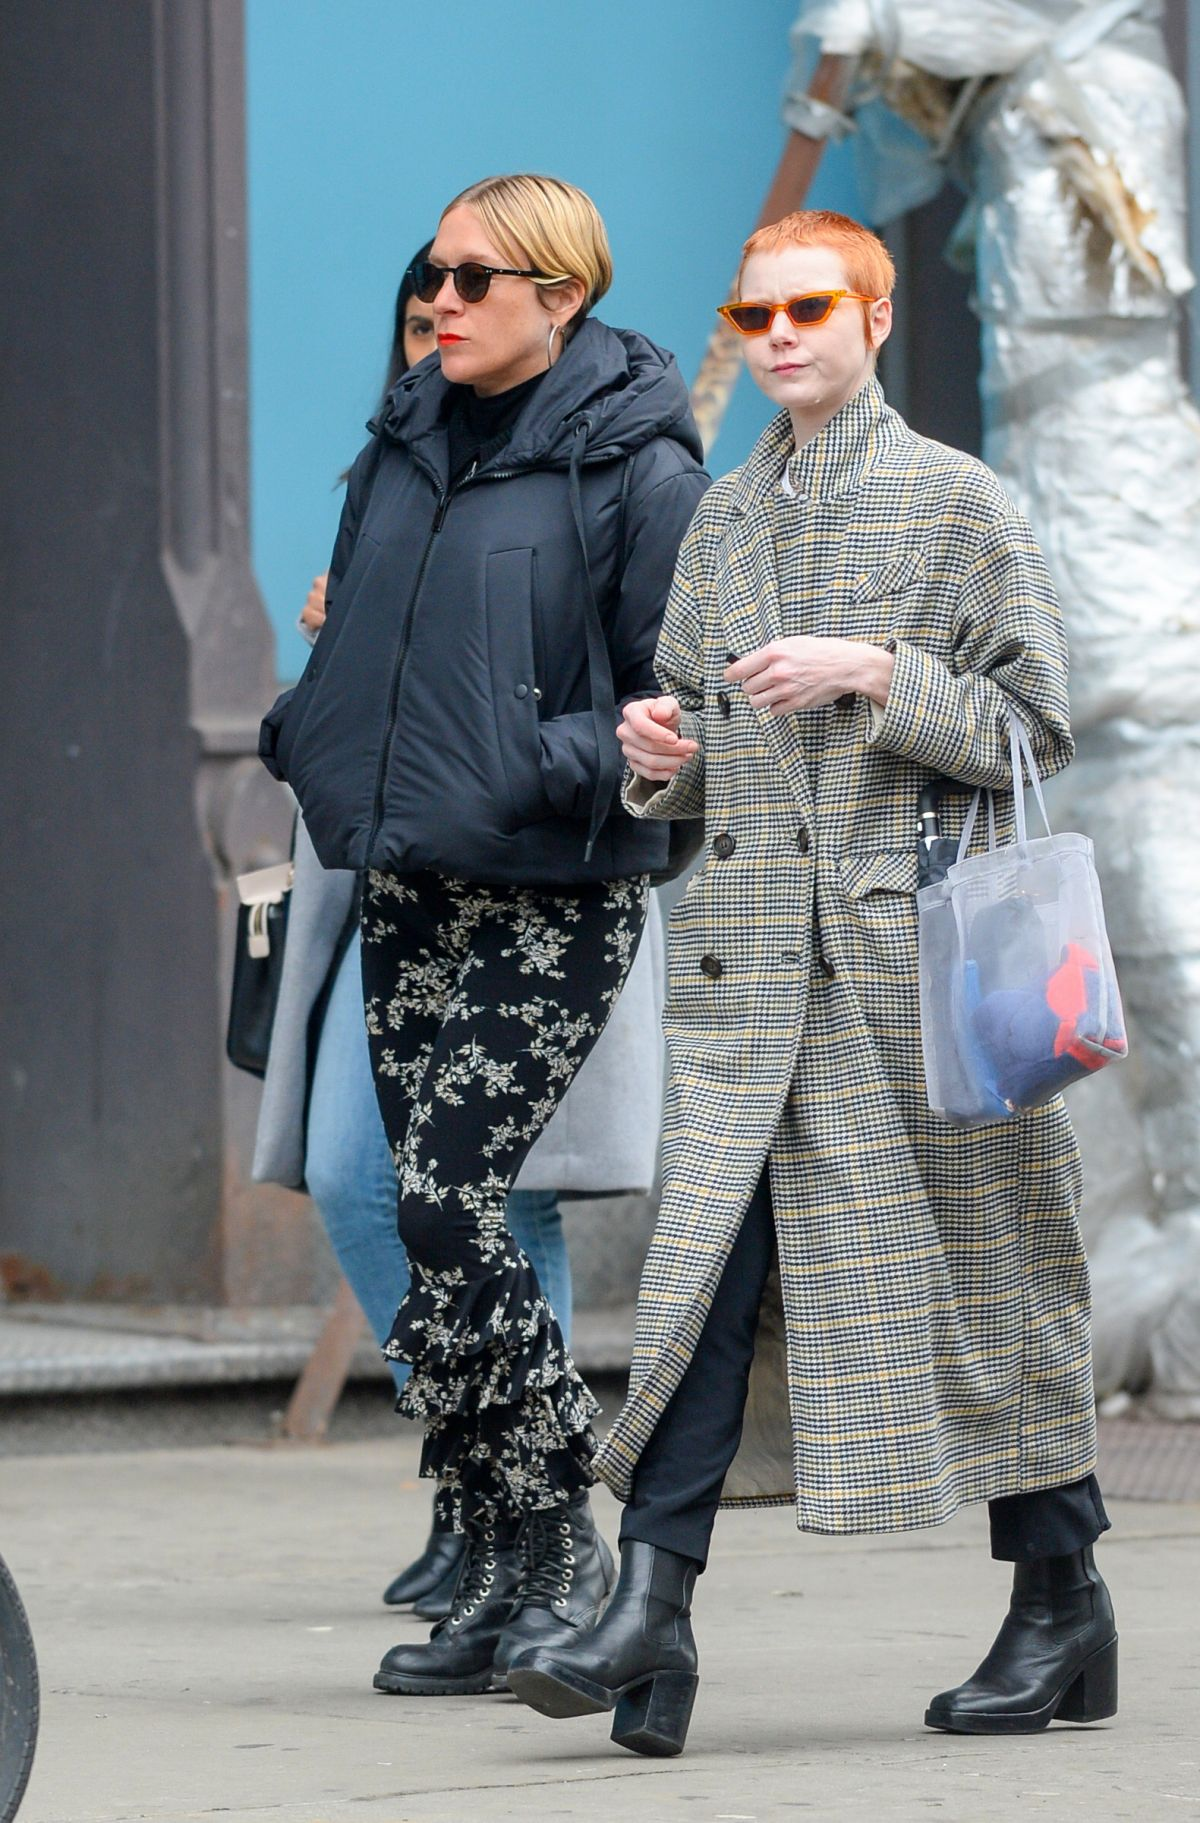 Chloe Sevigny Shows Her Baby Bump While Out On A Stroll